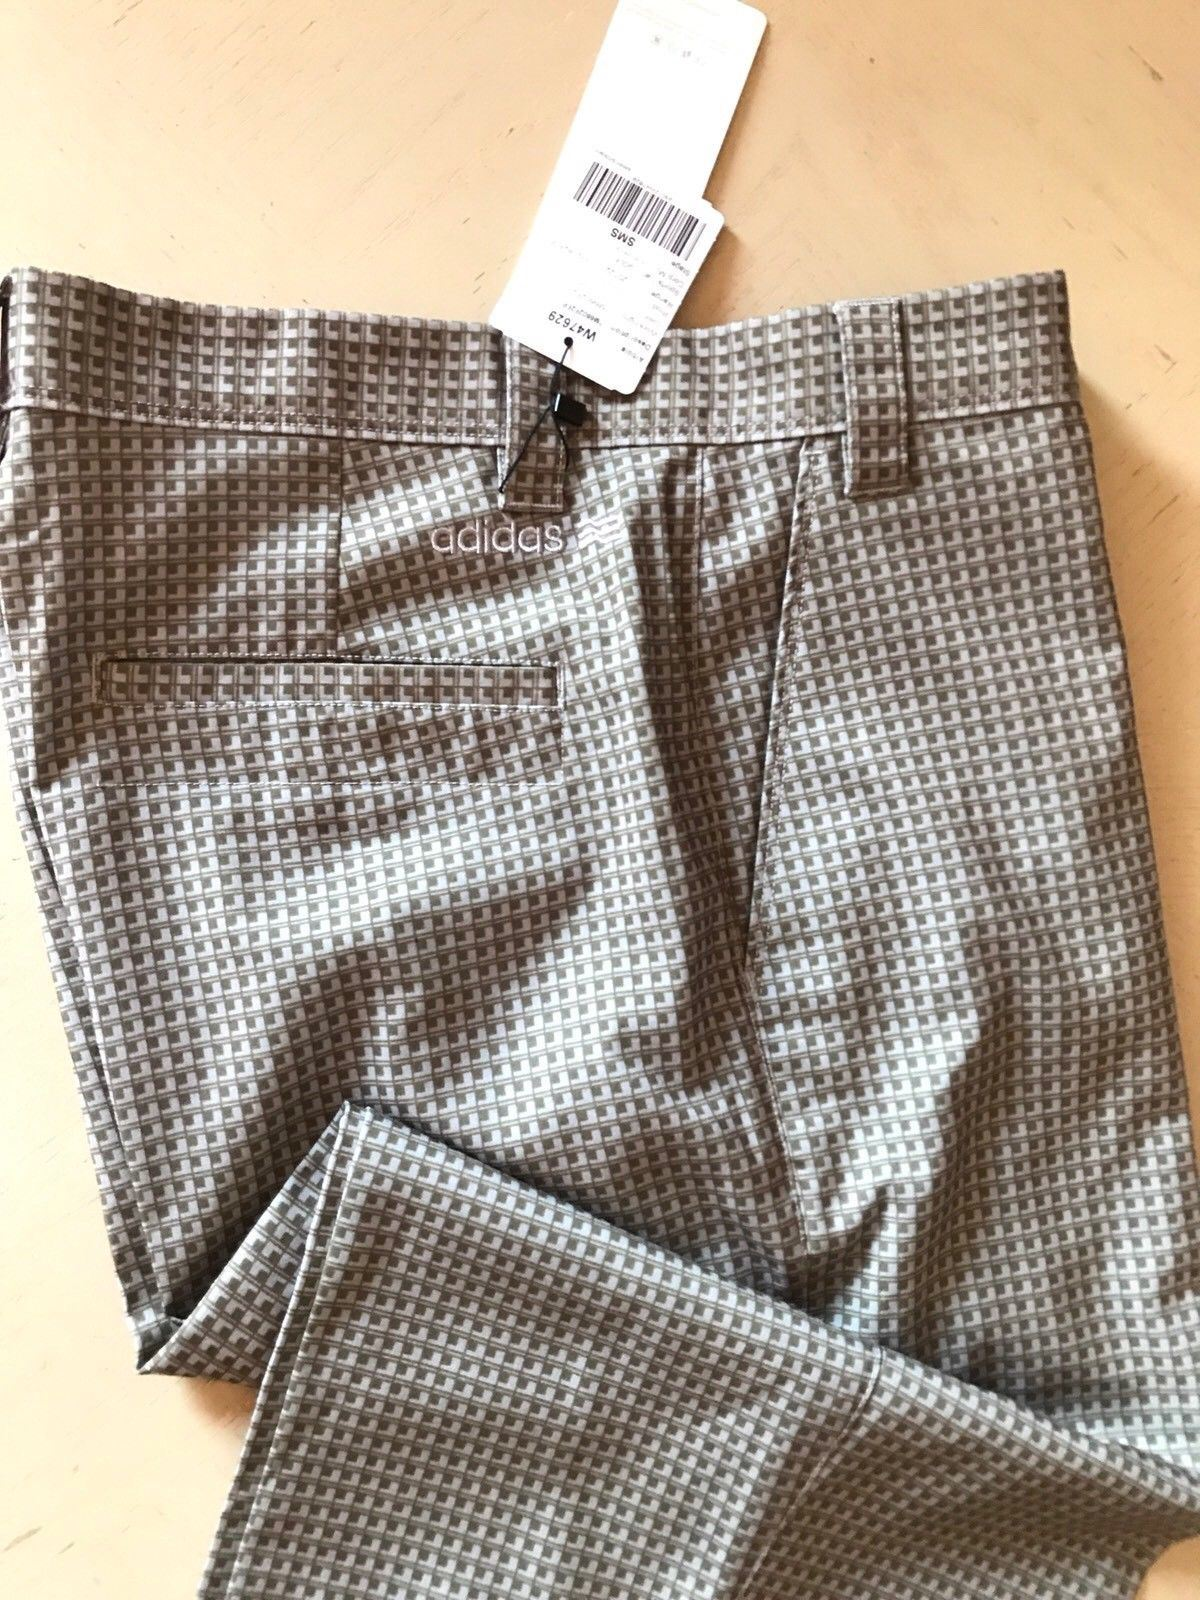 New $225 adidas Pants Golf Fit Green Size M - BAYSUPERSTORE